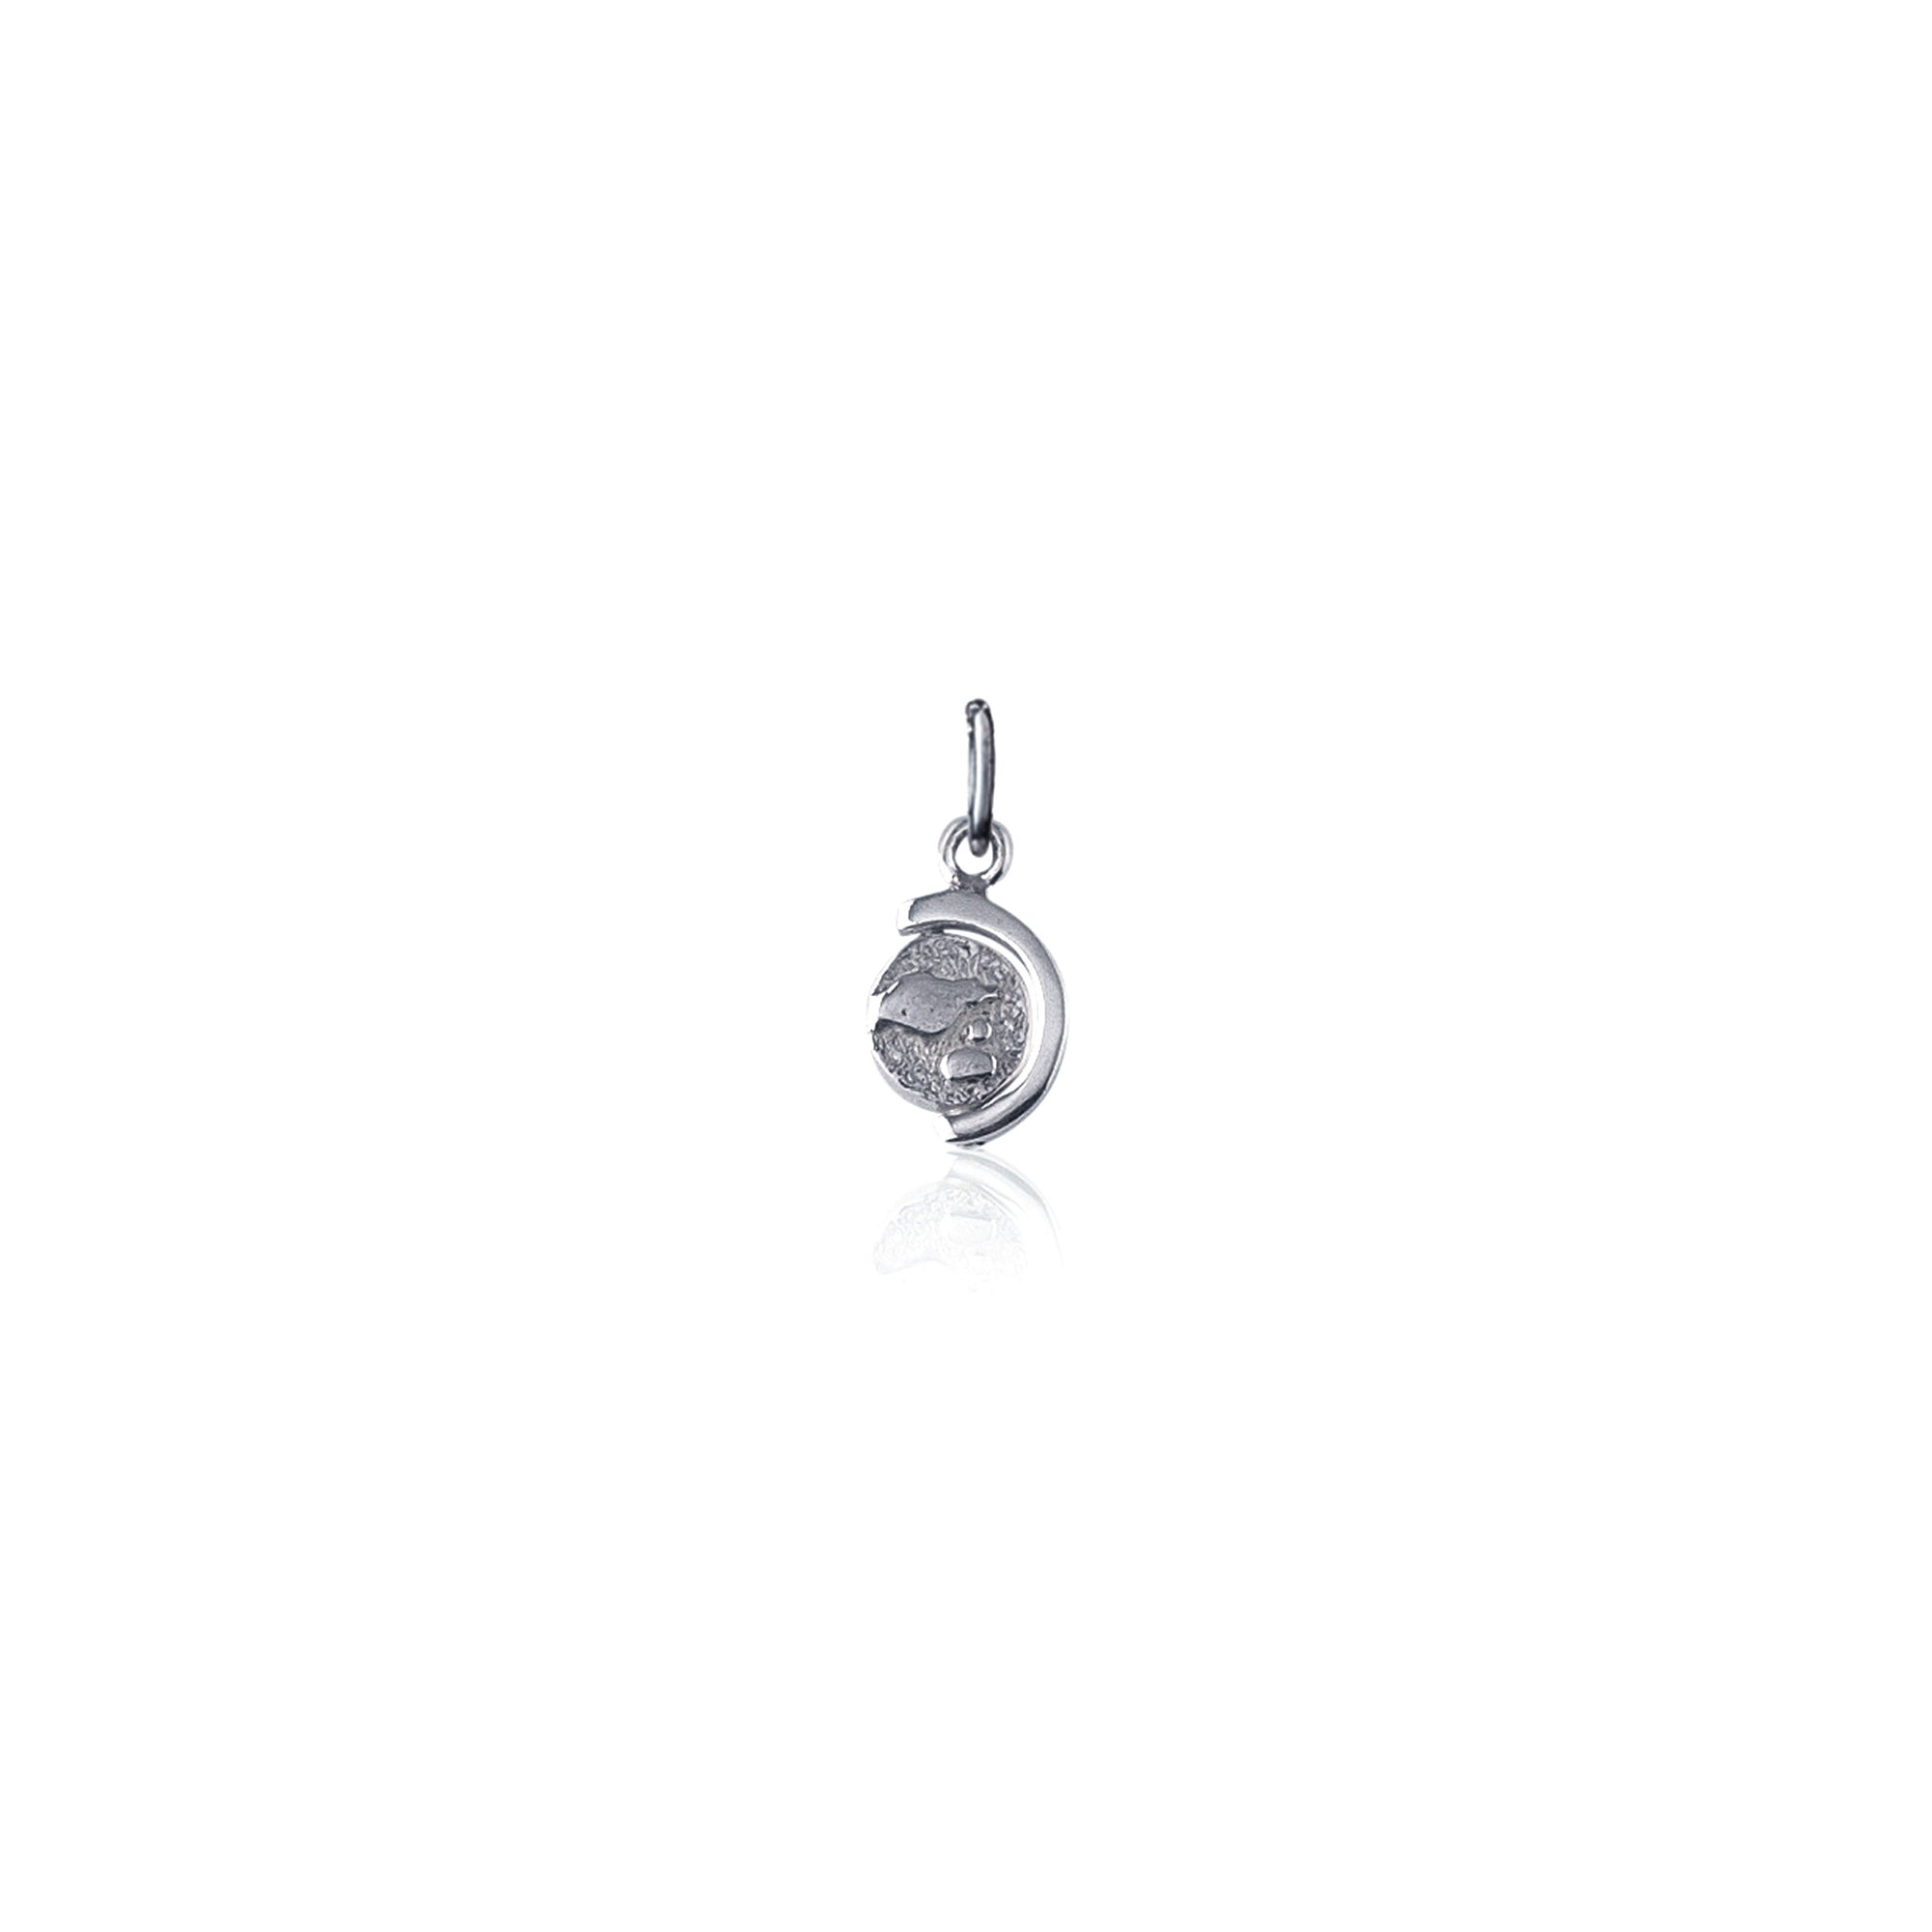 Silver Spinning Charm for Necklace or Bracelet